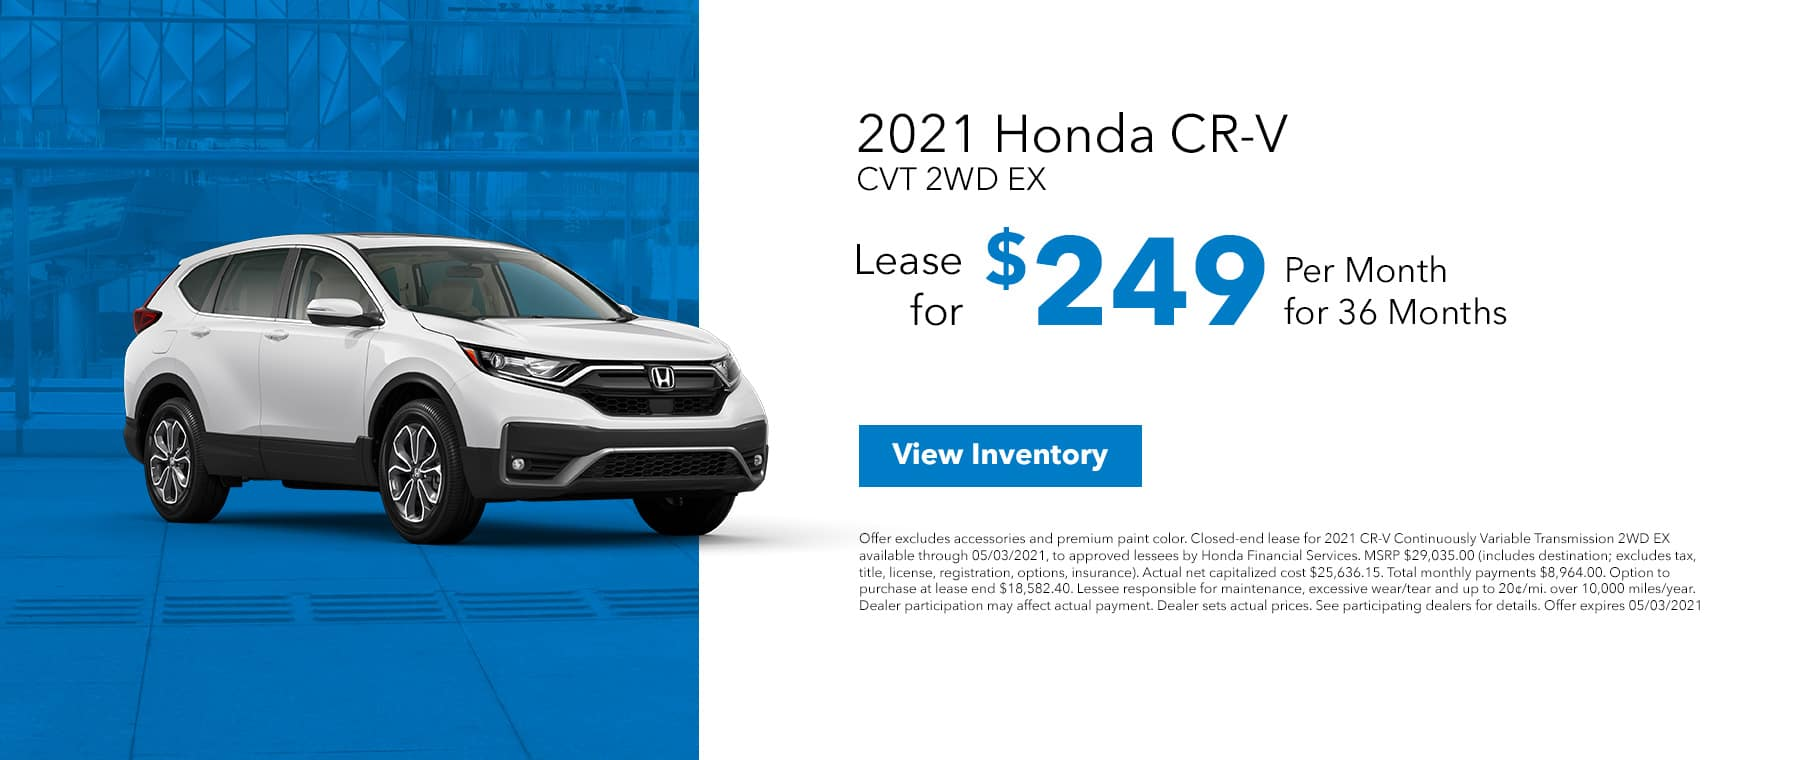 New 2021 Honda CR-V, Lease For $219